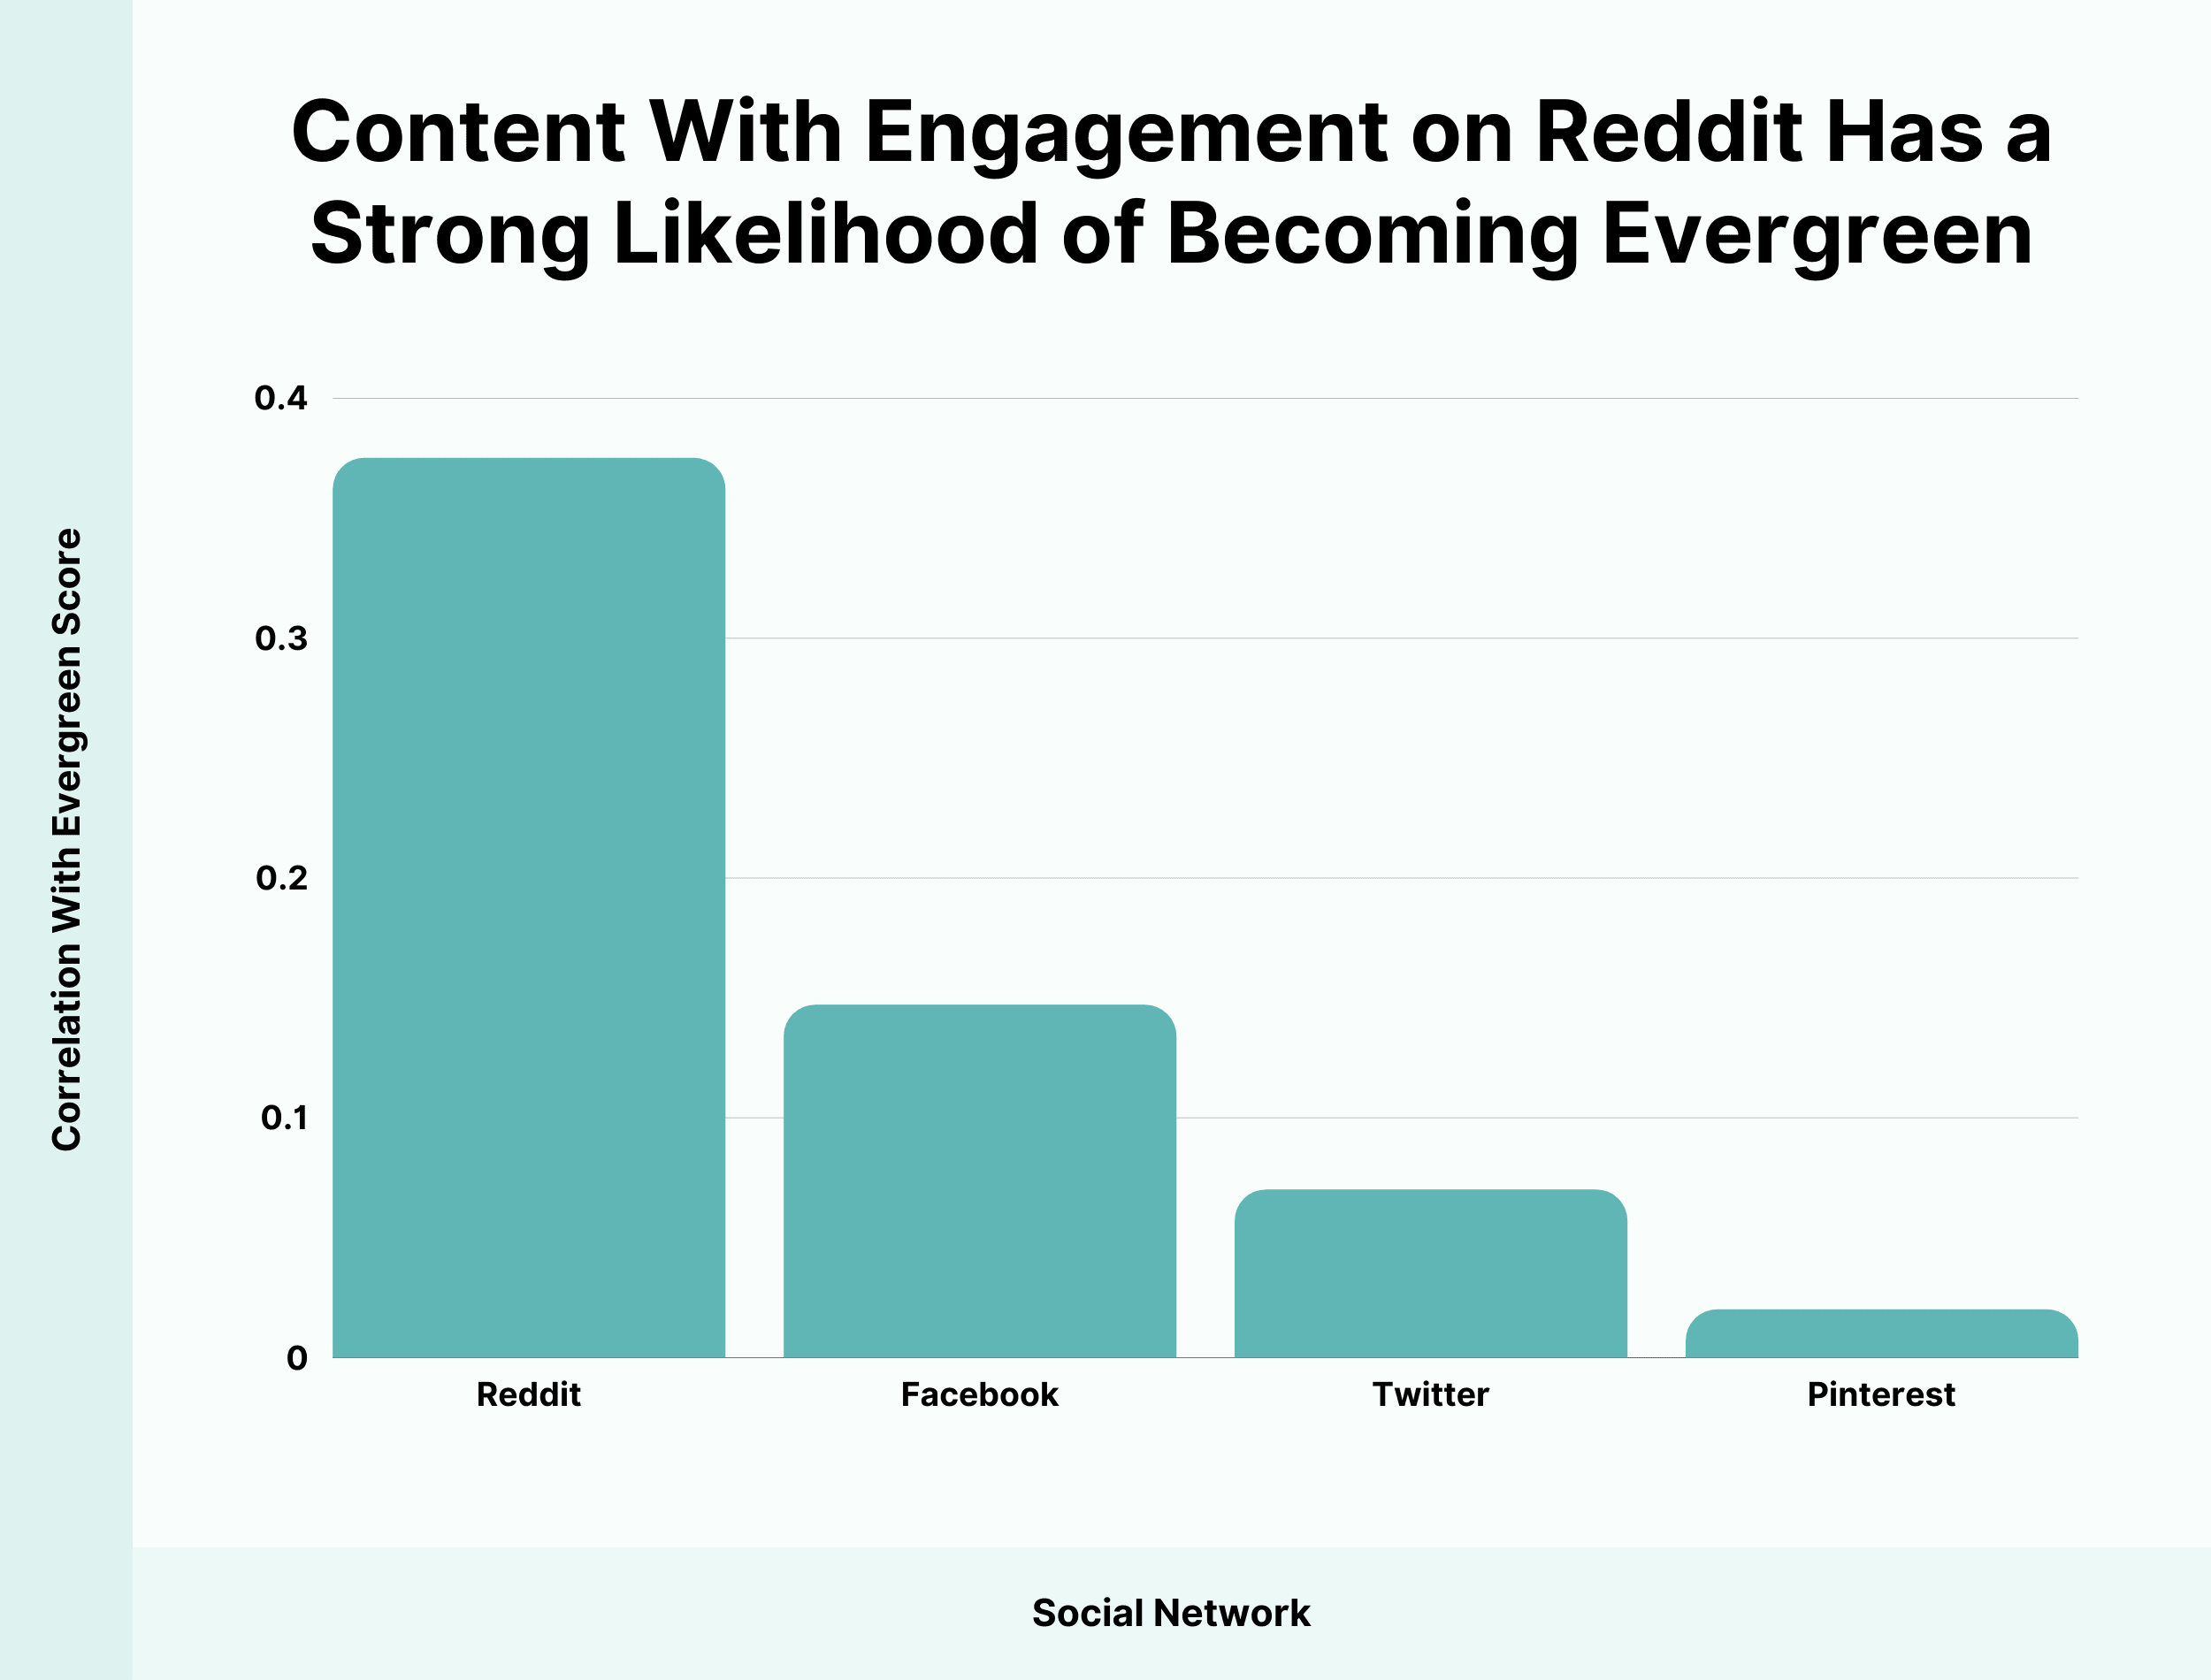 Content with engagement on Reddit has a strong likelihood of becoming evergreen